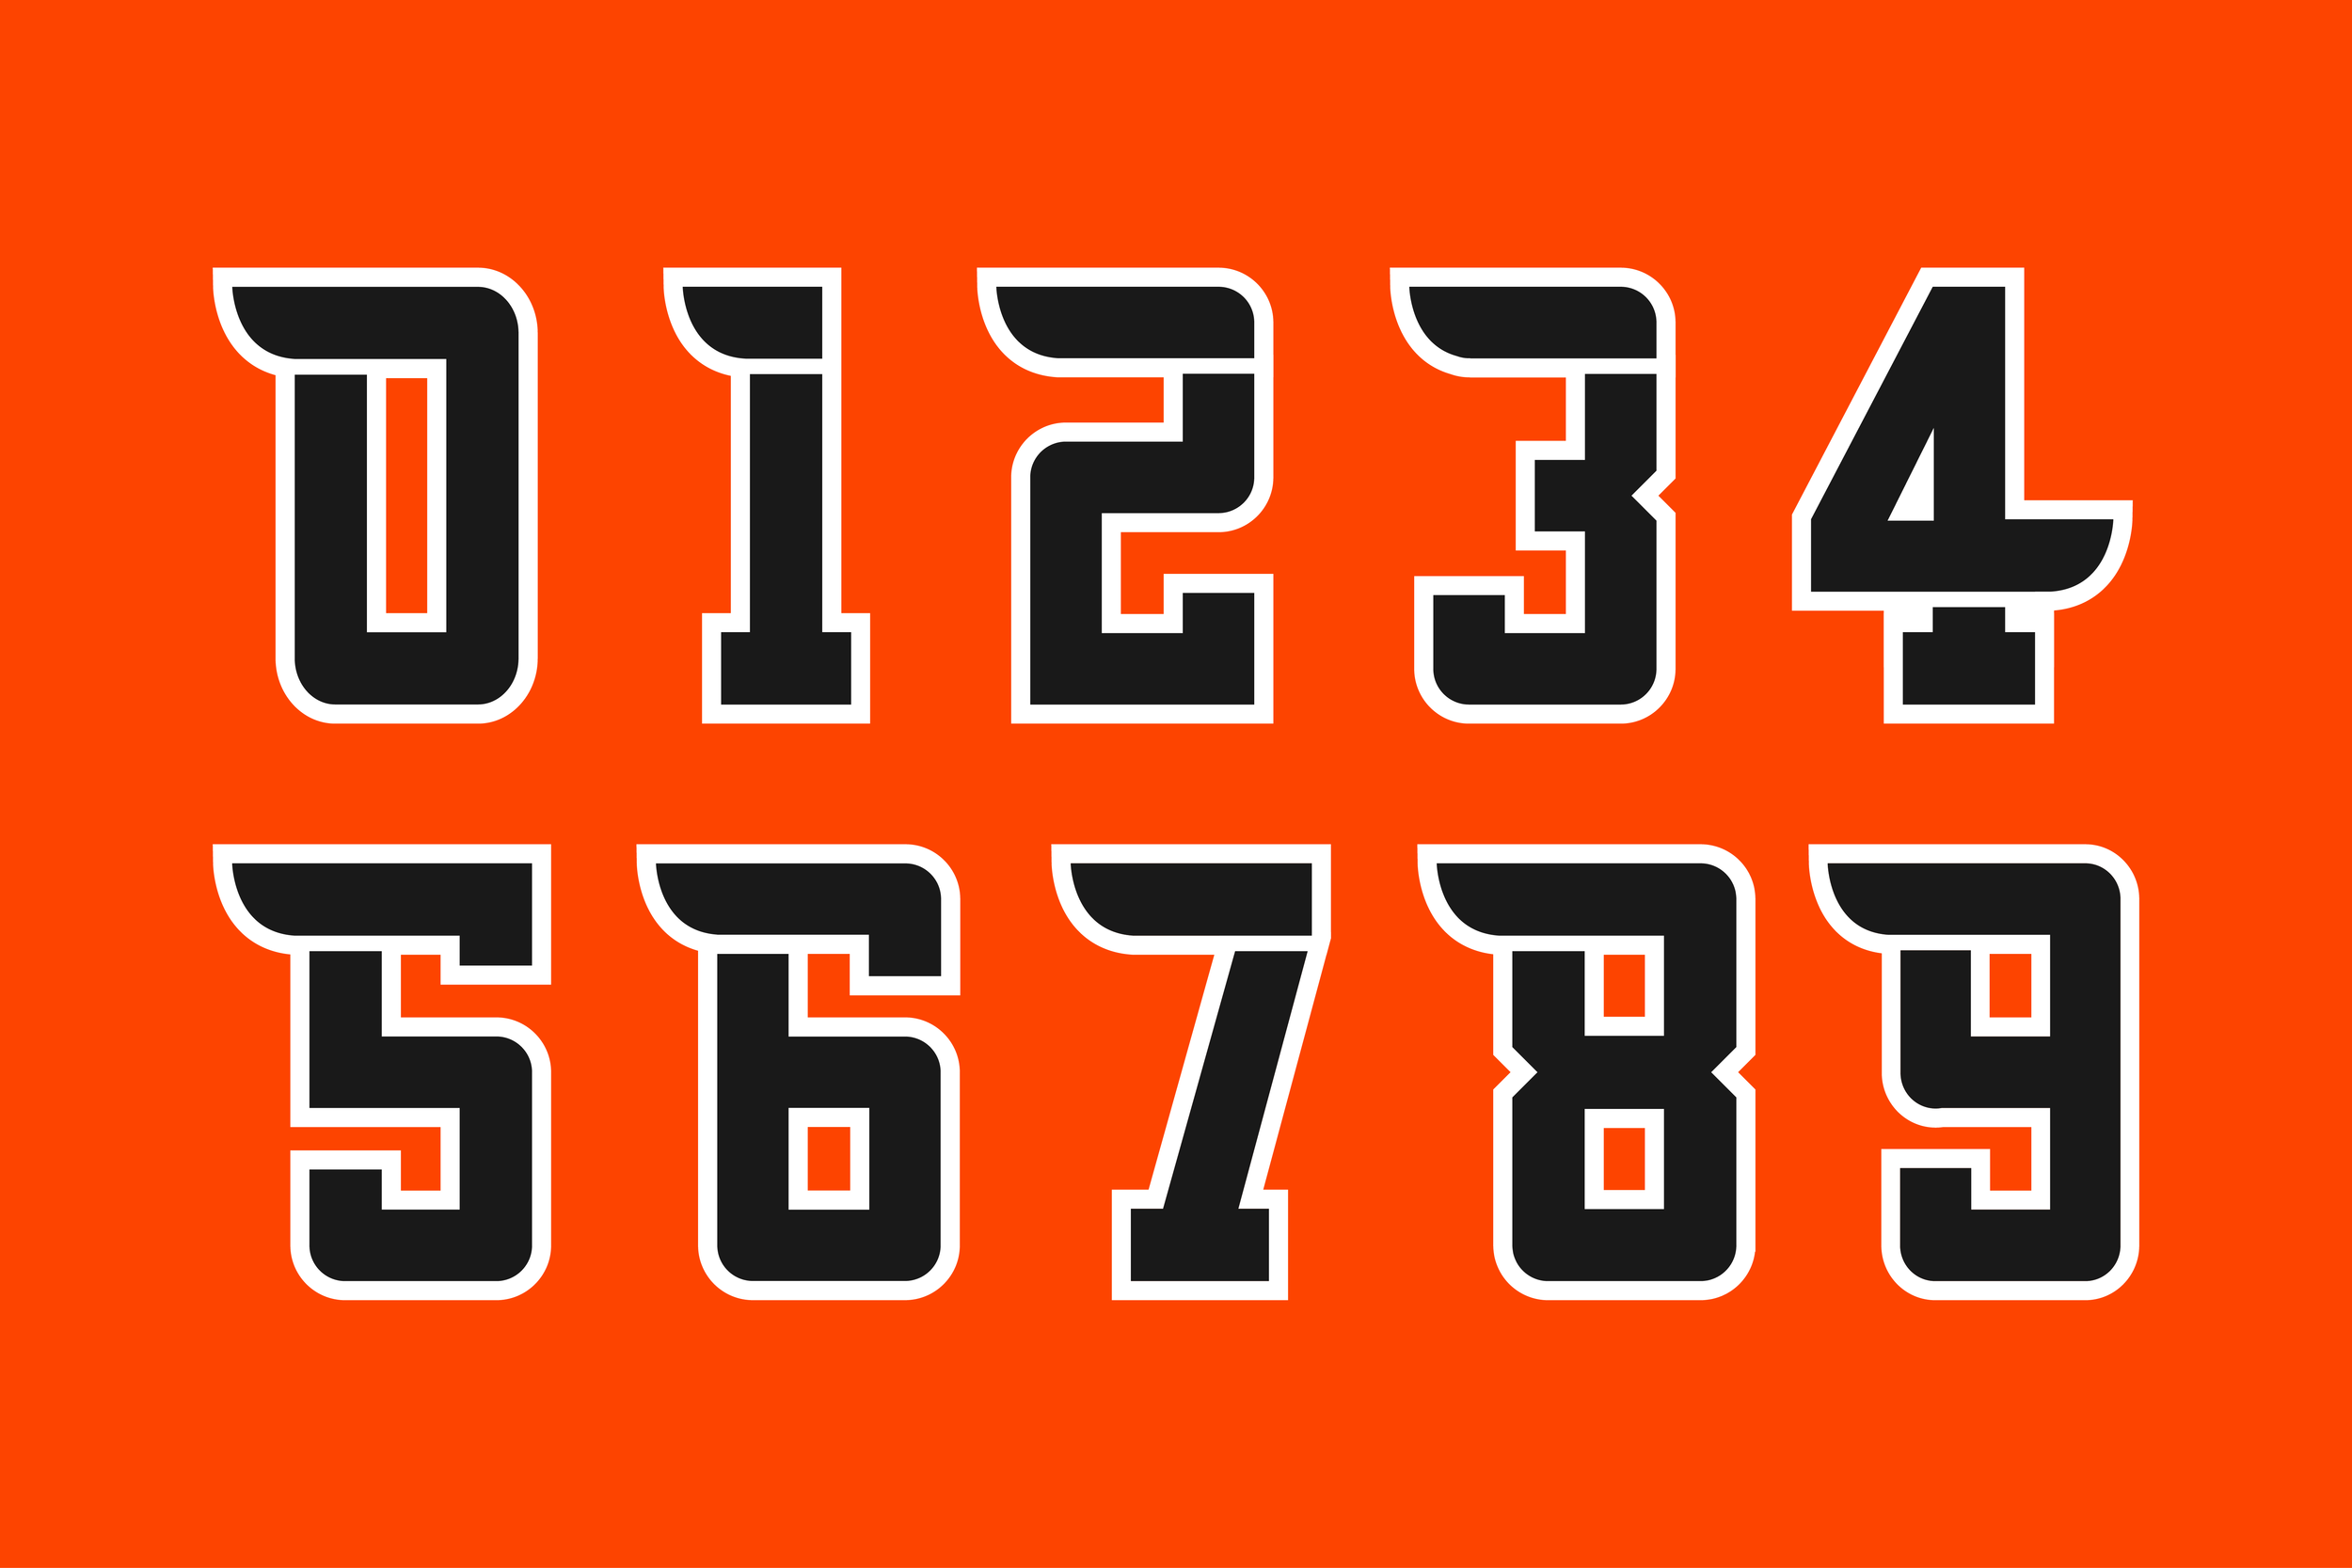 Custom font designed for Sport Talk Philly's Flyerdelphia. Numbers created based off the identity of the city's professional hockey team.